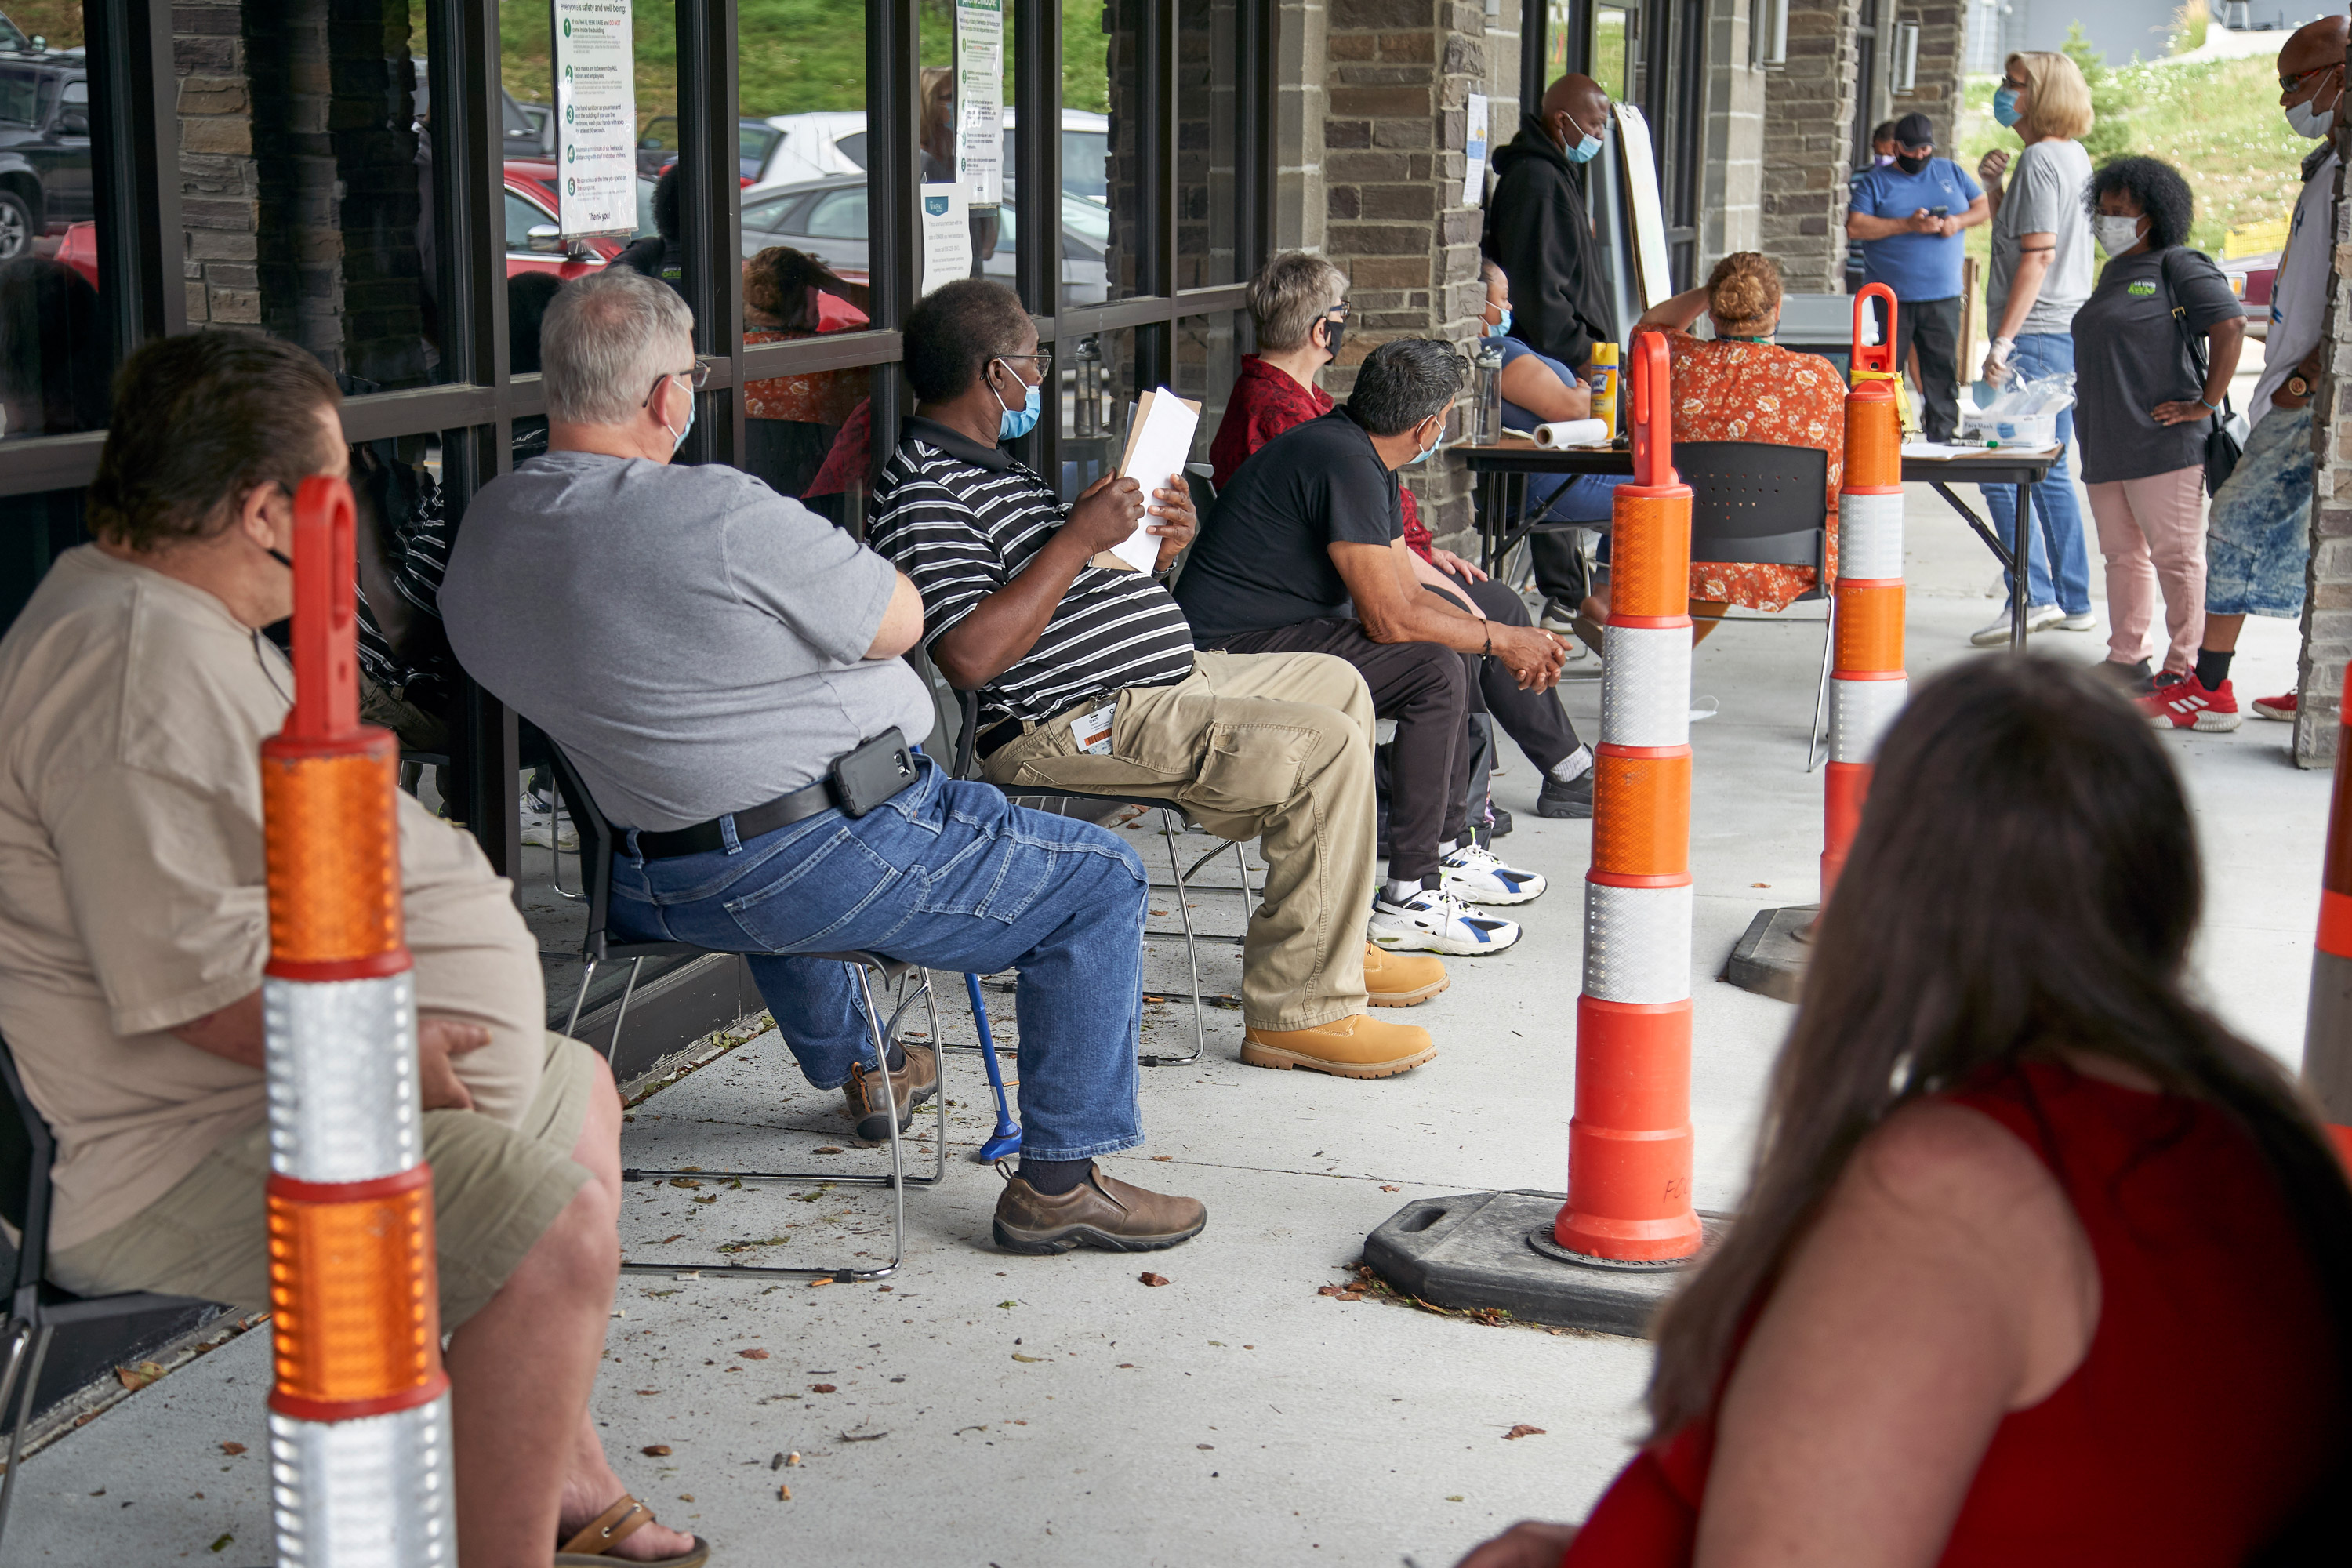 People wait to be called into the Heartland Workforce Solutions office in Omaha, Nebraska on July 15.